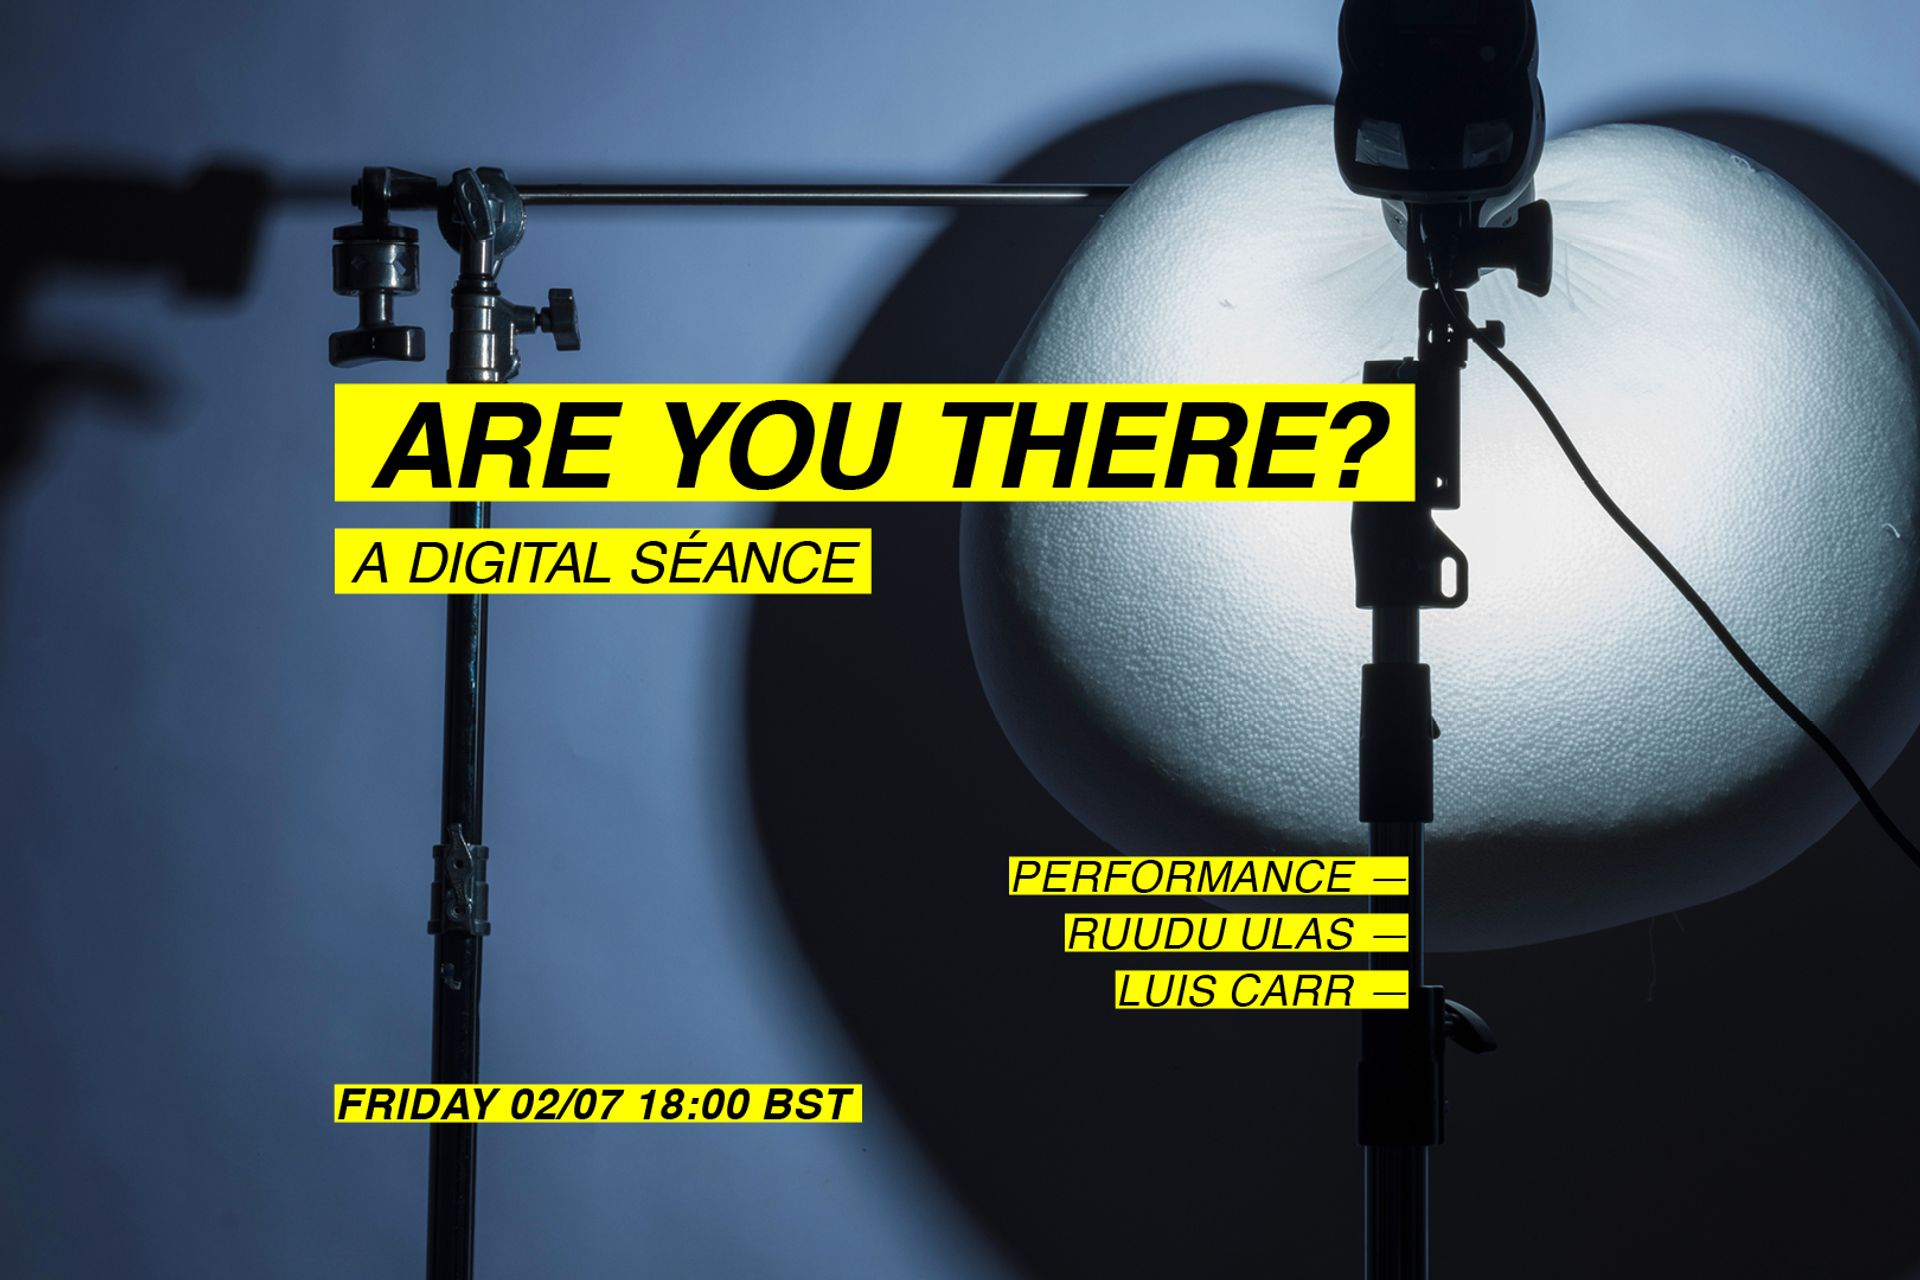 Are you there? (Performance)-image